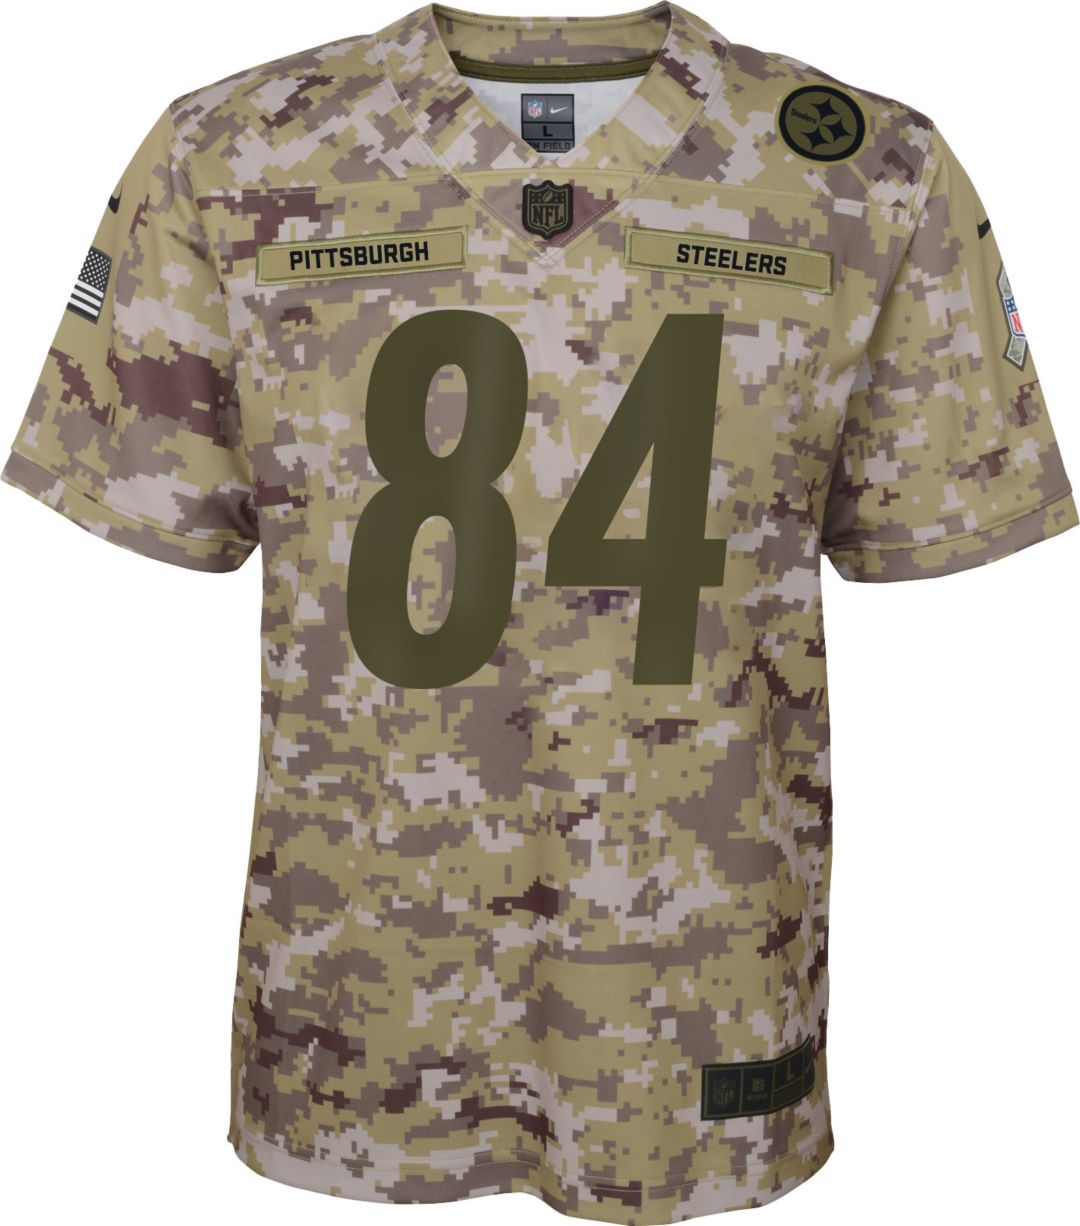 best service a91a5 5fcfa Nike Youth Salute to Service Pittsburgh Steelers Antonio Brown #84  Camouflage Game Jersey